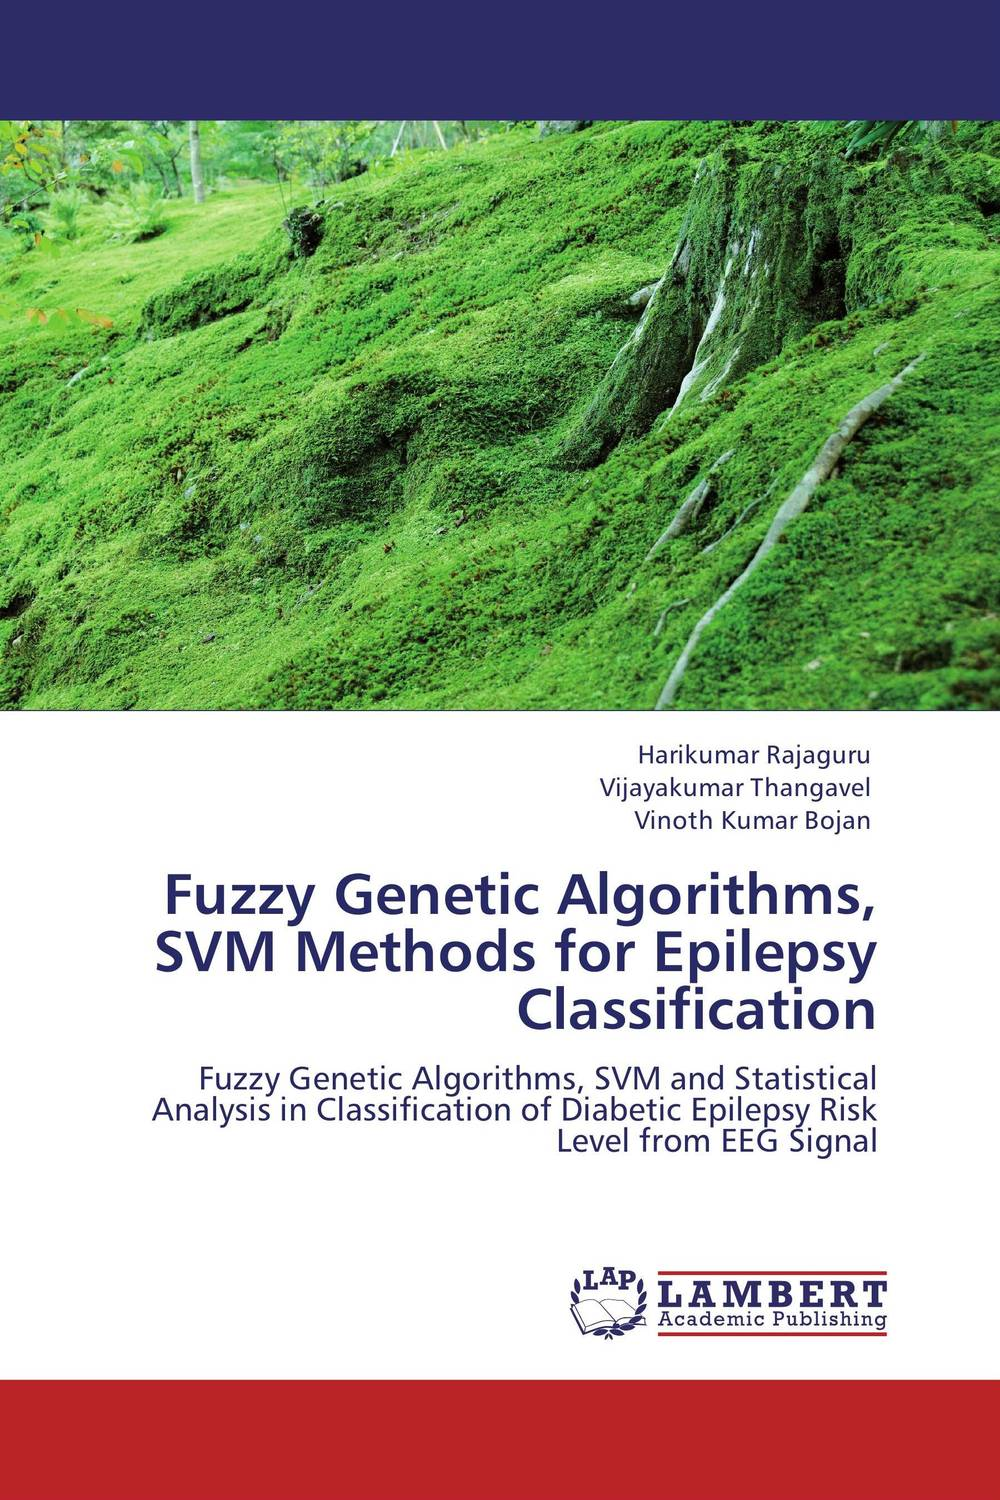 Fuzzy Genetic Algorithms, SVM Methods for Epilepsy Classification epilepsy in children psychological concerns